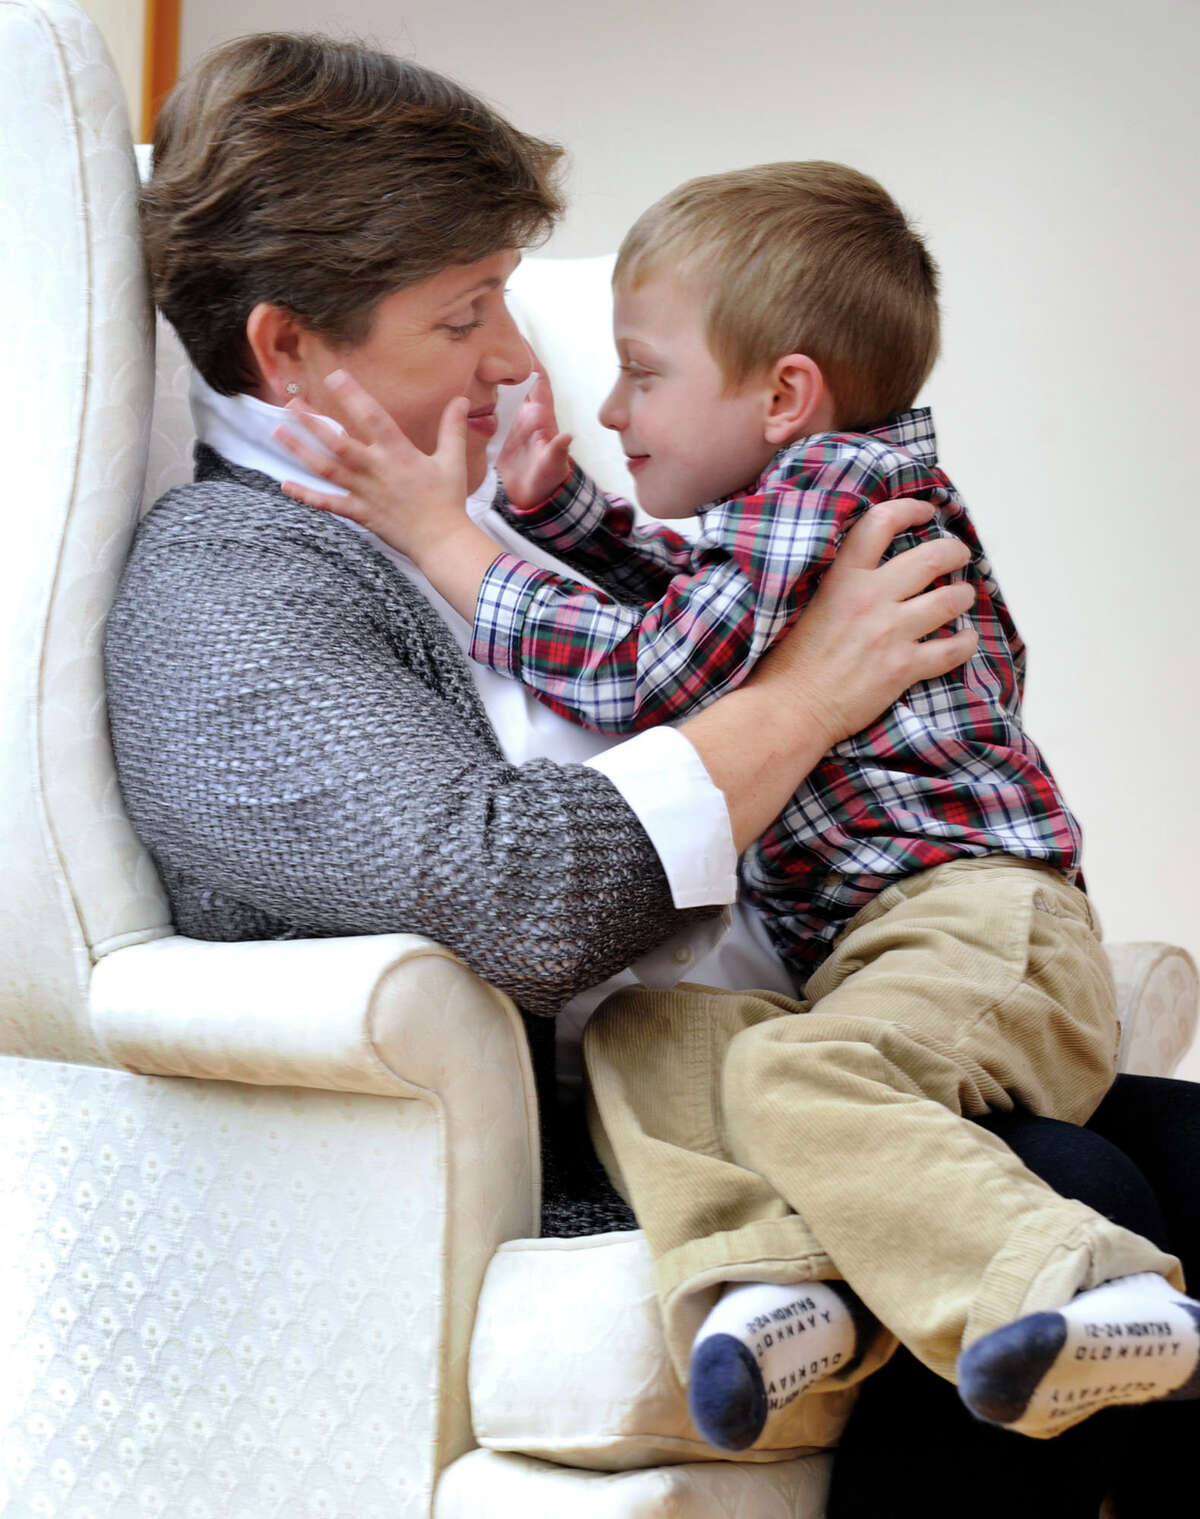 """Marie Hatcher spends time with her son Matthew, 4. Hatcher, 45, of Sherman is a recipient of the """"Heart of Women"""" Award from the Women's Business Council of the Greater Danbury Chamber of Commerce for 2012."""